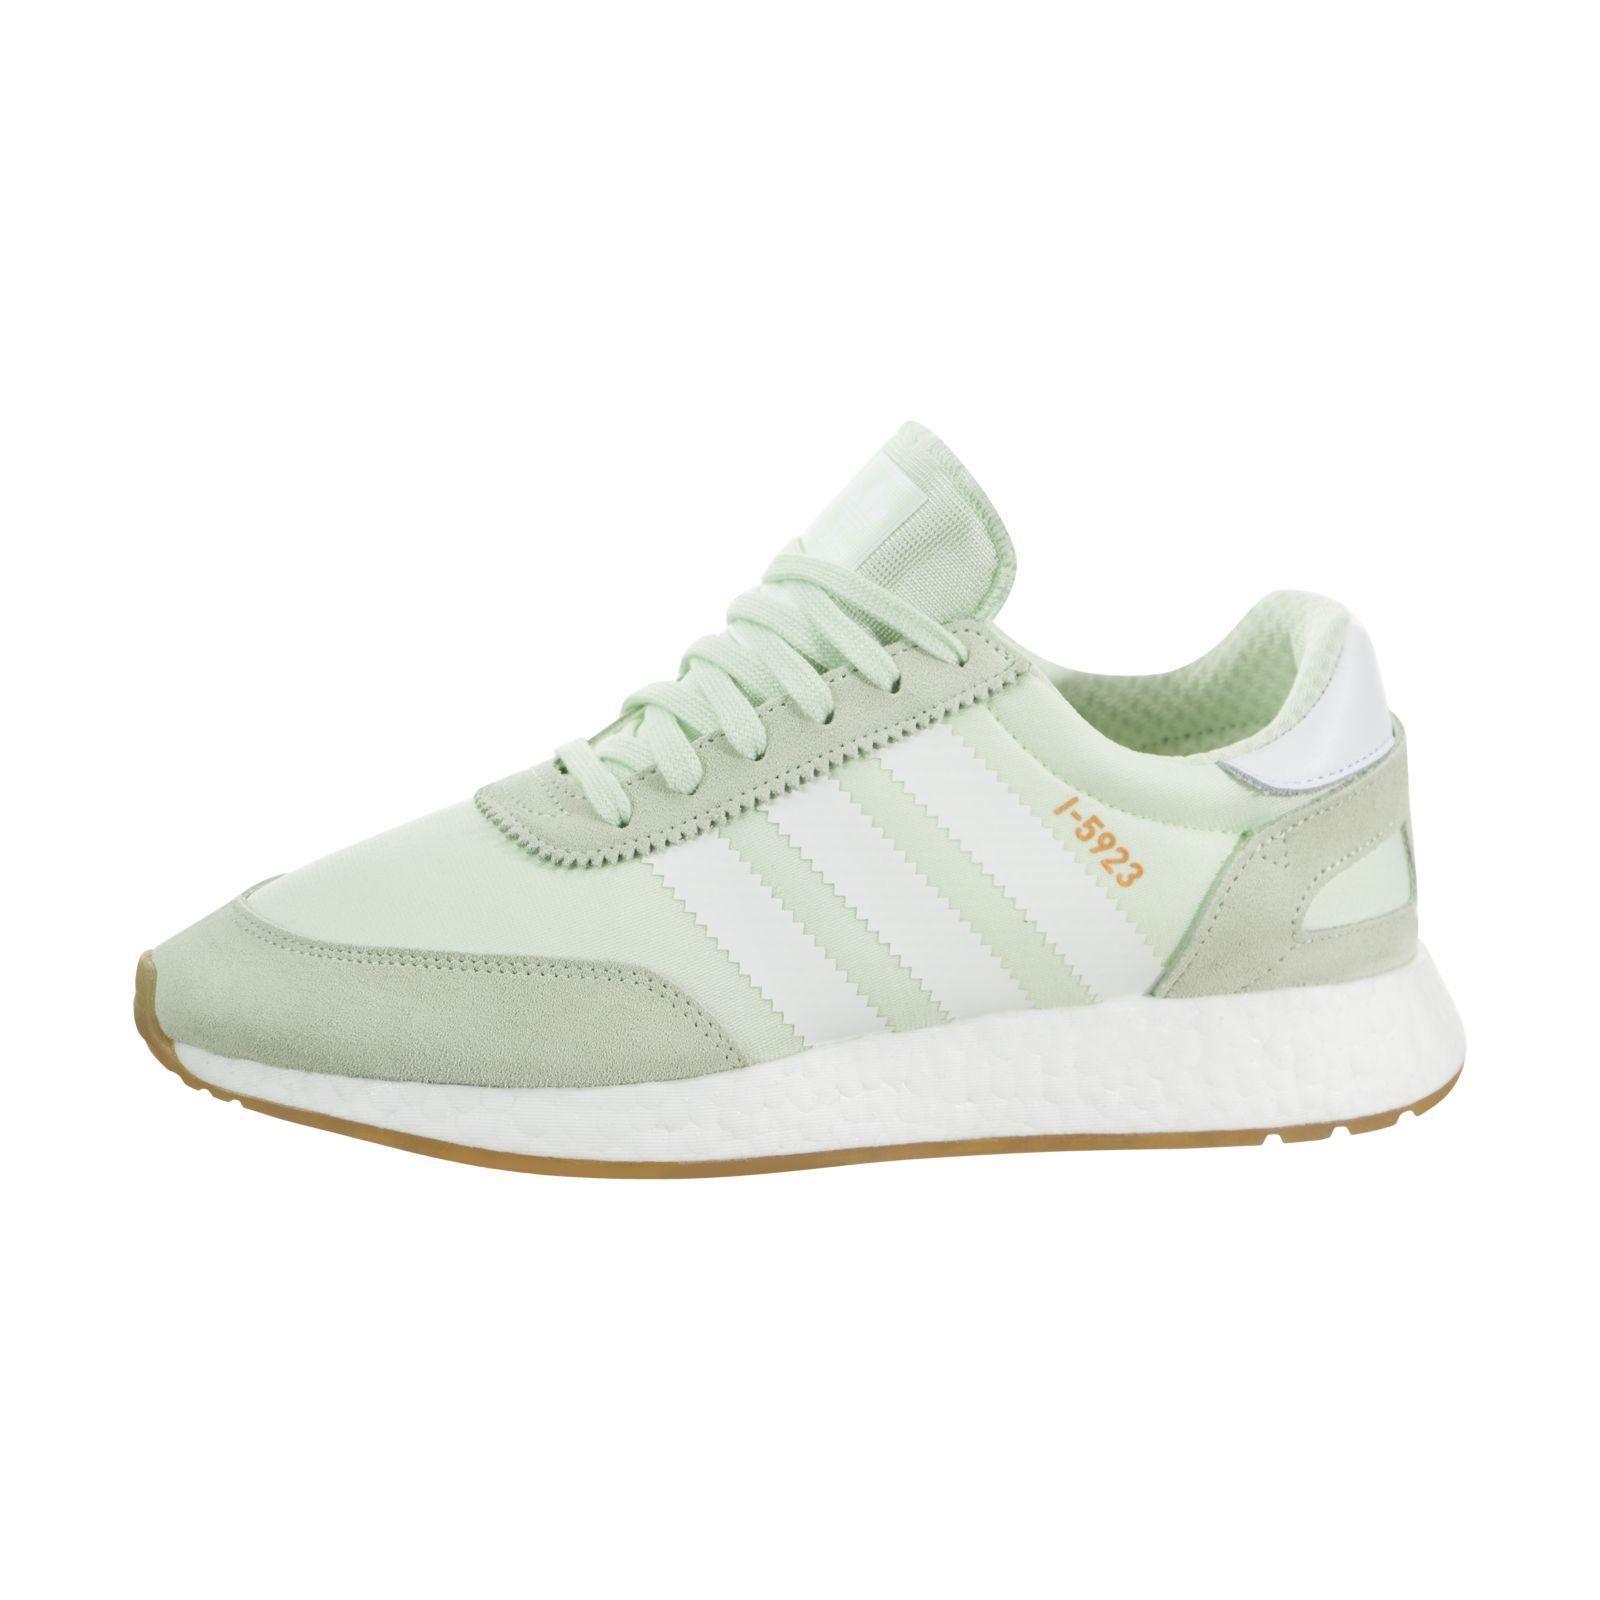 100% high quality save off shoes for cheap Adidas I-5923 W cq2530